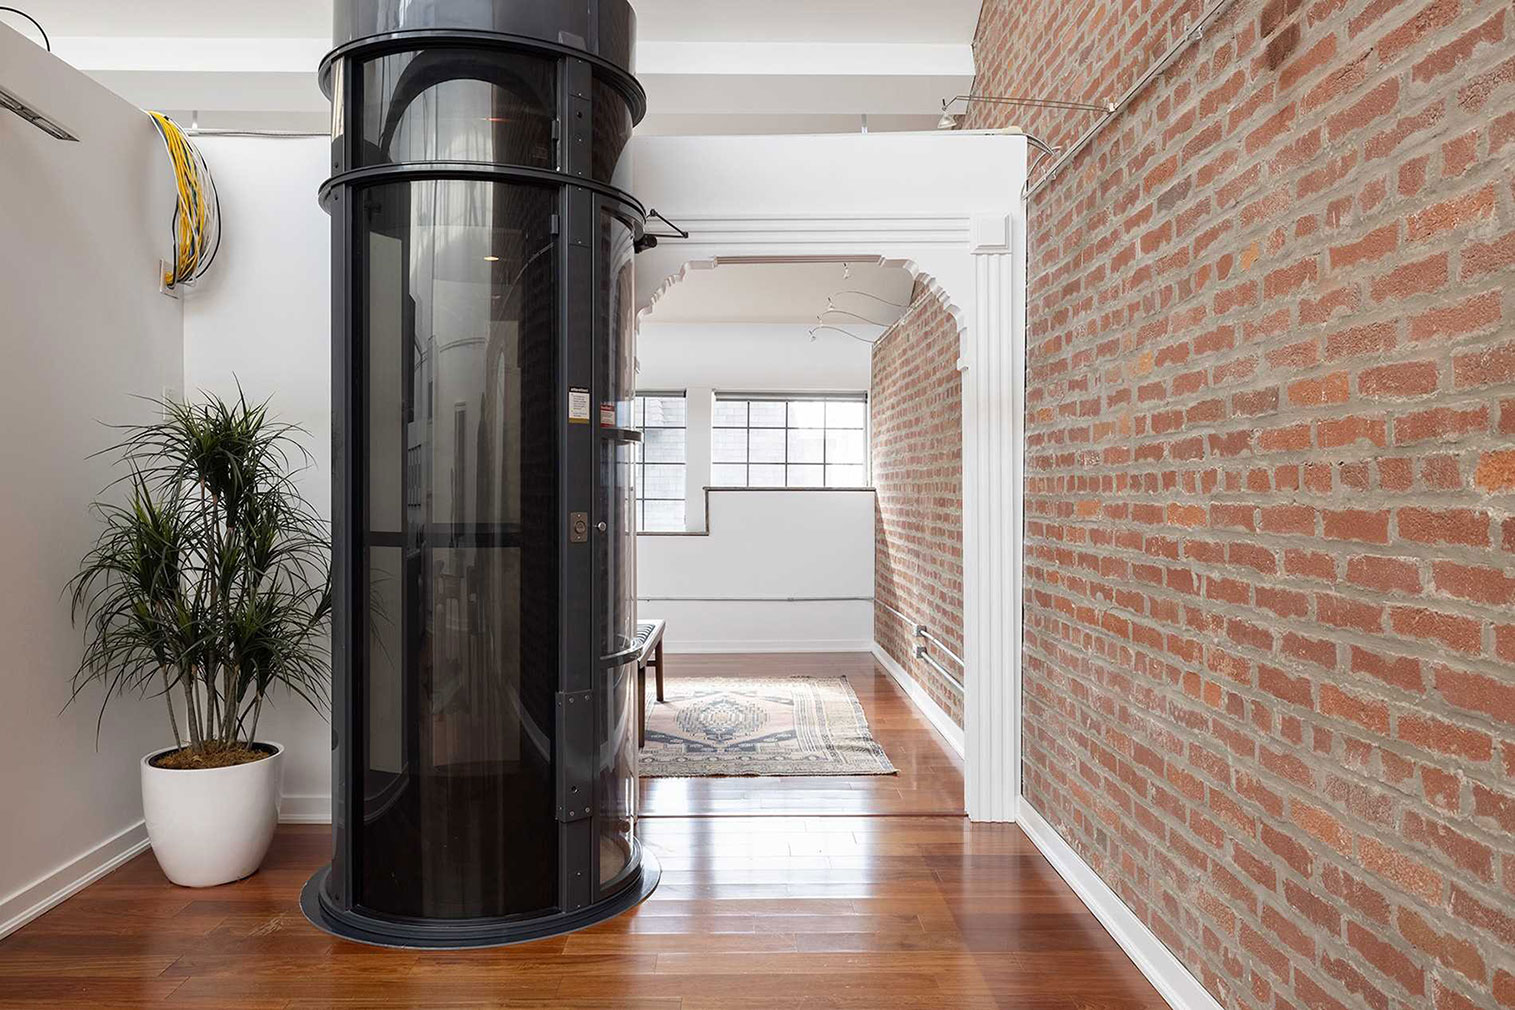 Arched doorways and floating walls help divide the apartment while retaining its soaring height